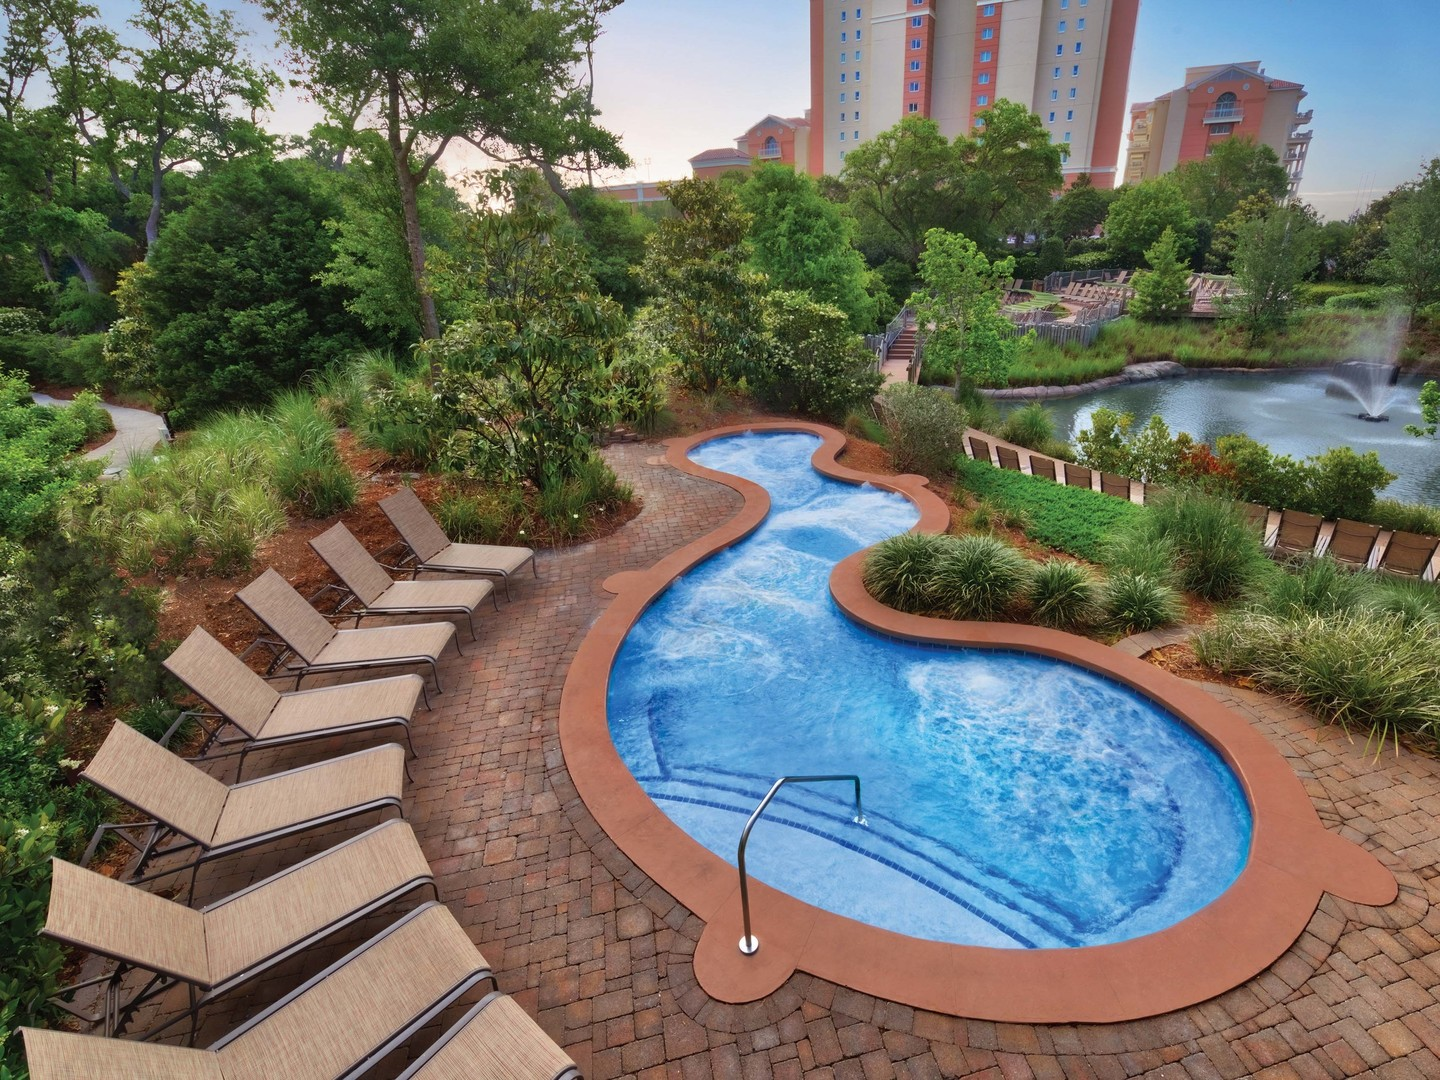 Marriott's OceanWatch Whirlpool Spa. Marriott's OceanWatch is located in Myrtle Beach, South Carolina United States.